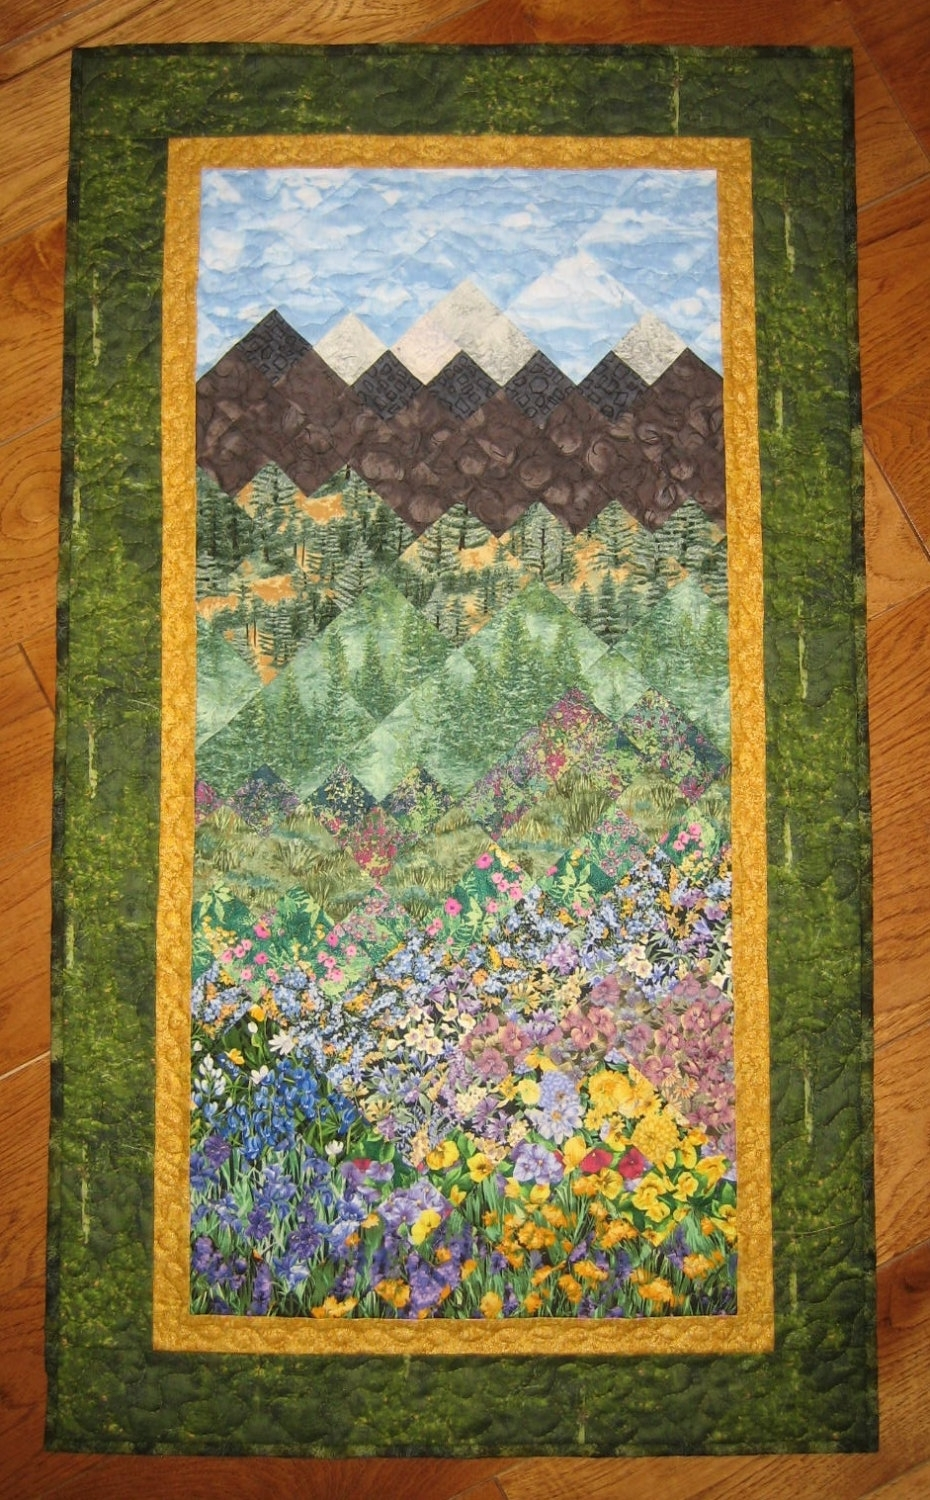 Art Quilt Fabric Wallhanging Pine Trees Mountain Flowers Handmade Inside Most Up To Date Fabric Applique Wall Art (View 7 of 15)